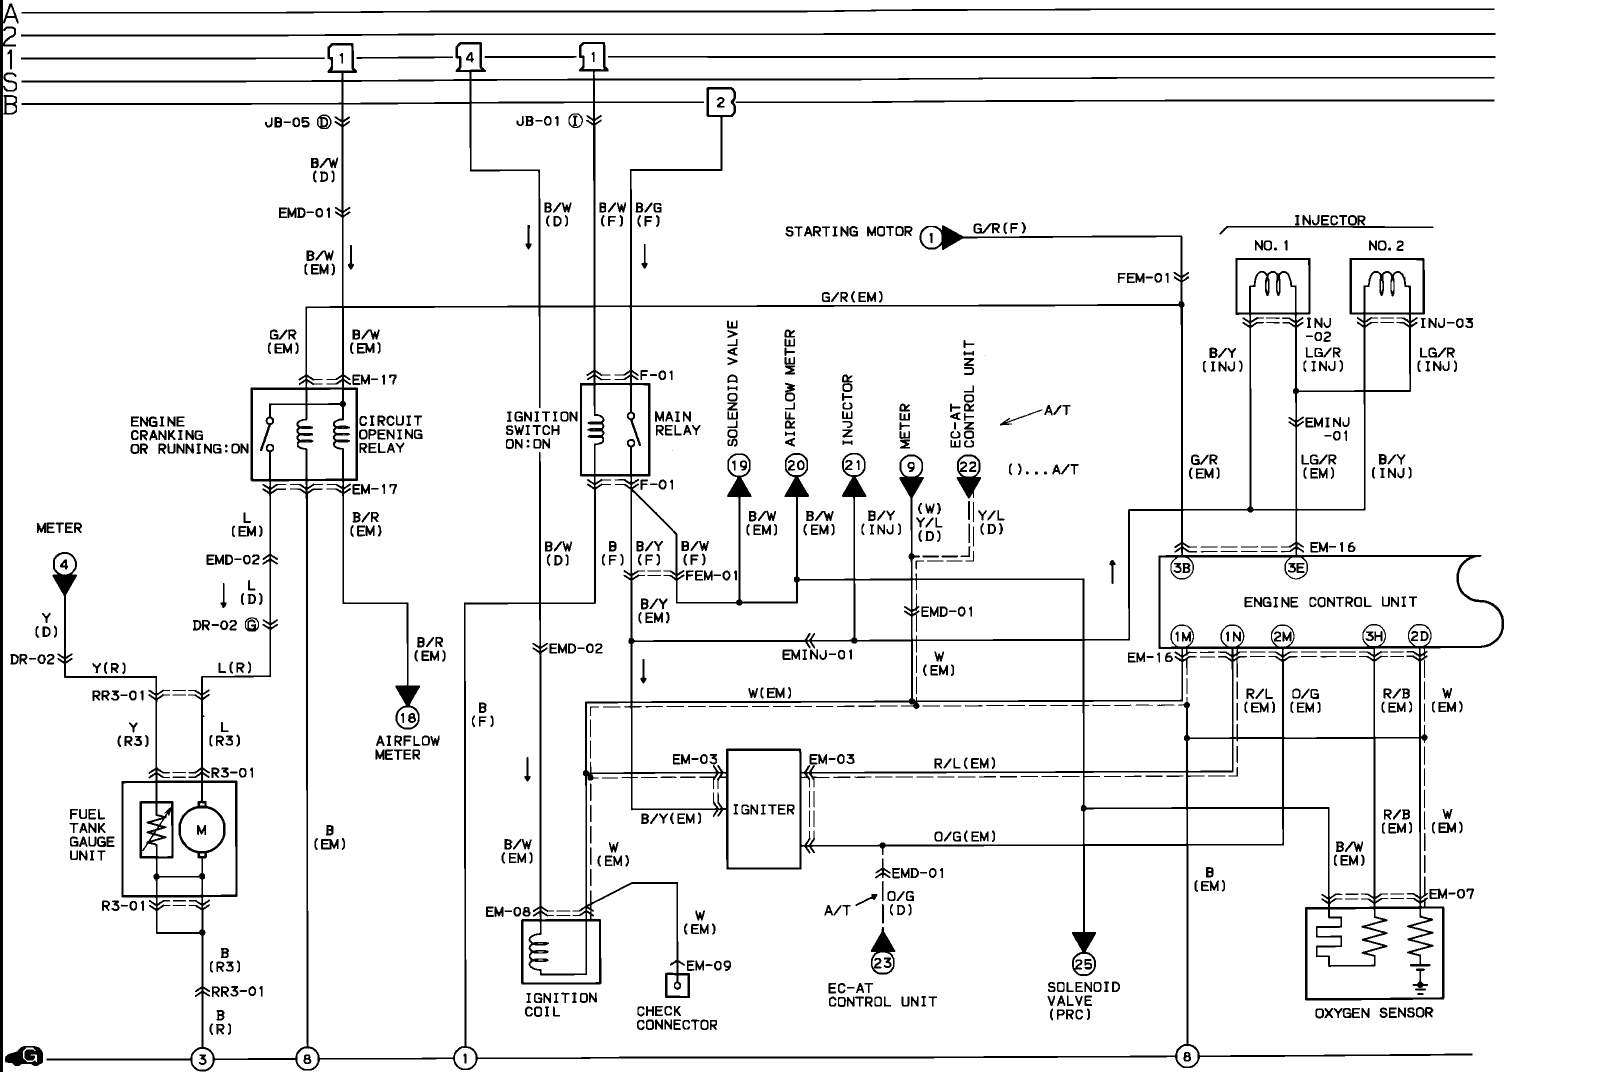 2003 Mazda Mpv Wiring Diagram Pictures 6 Cooling Fan Schematics Diagrams U2022 Rh Parntesis Co 2000